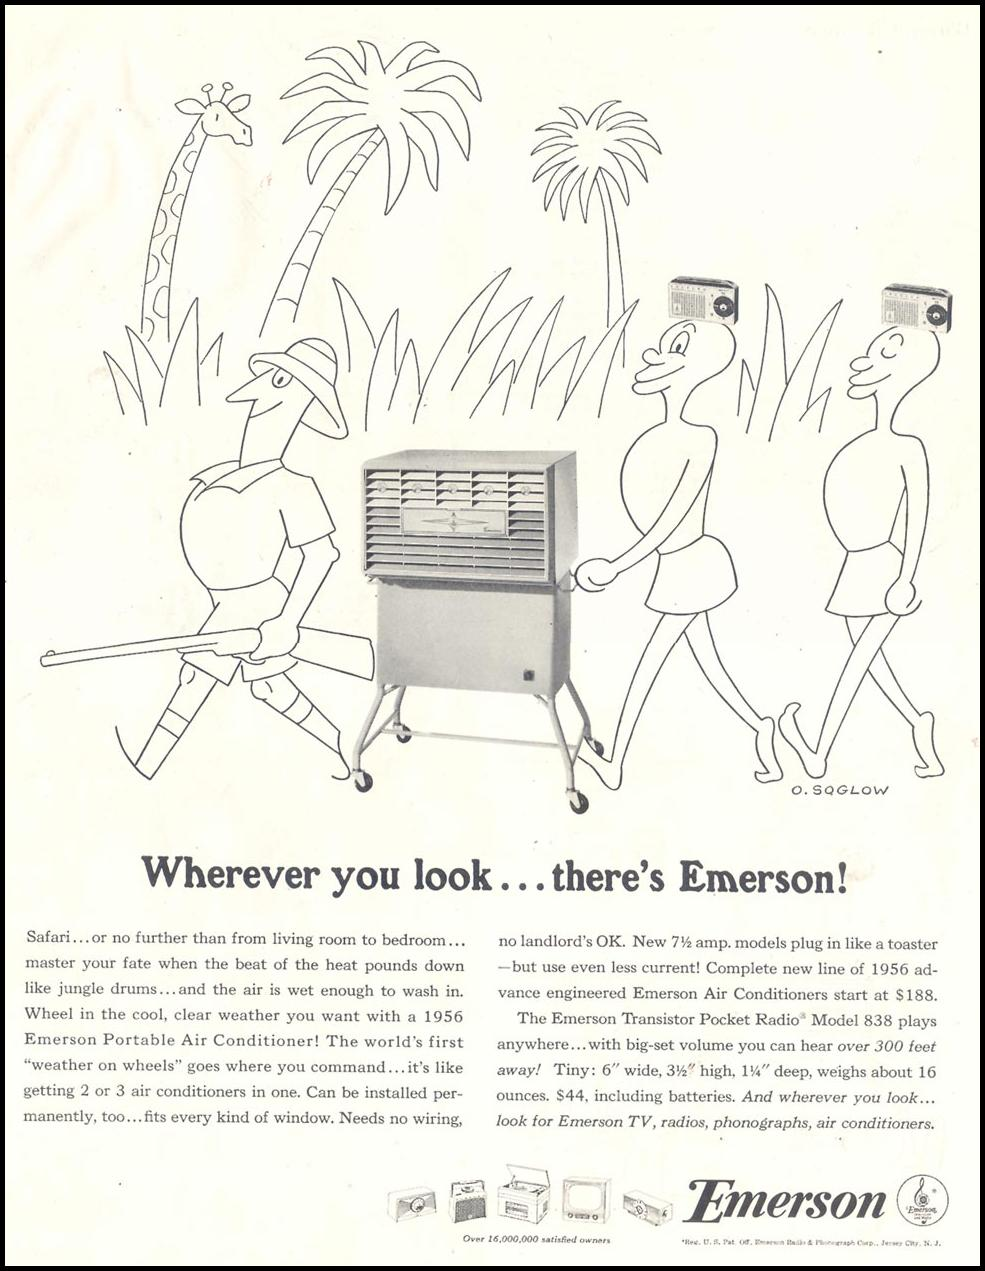 EMERSON APPLIANCES